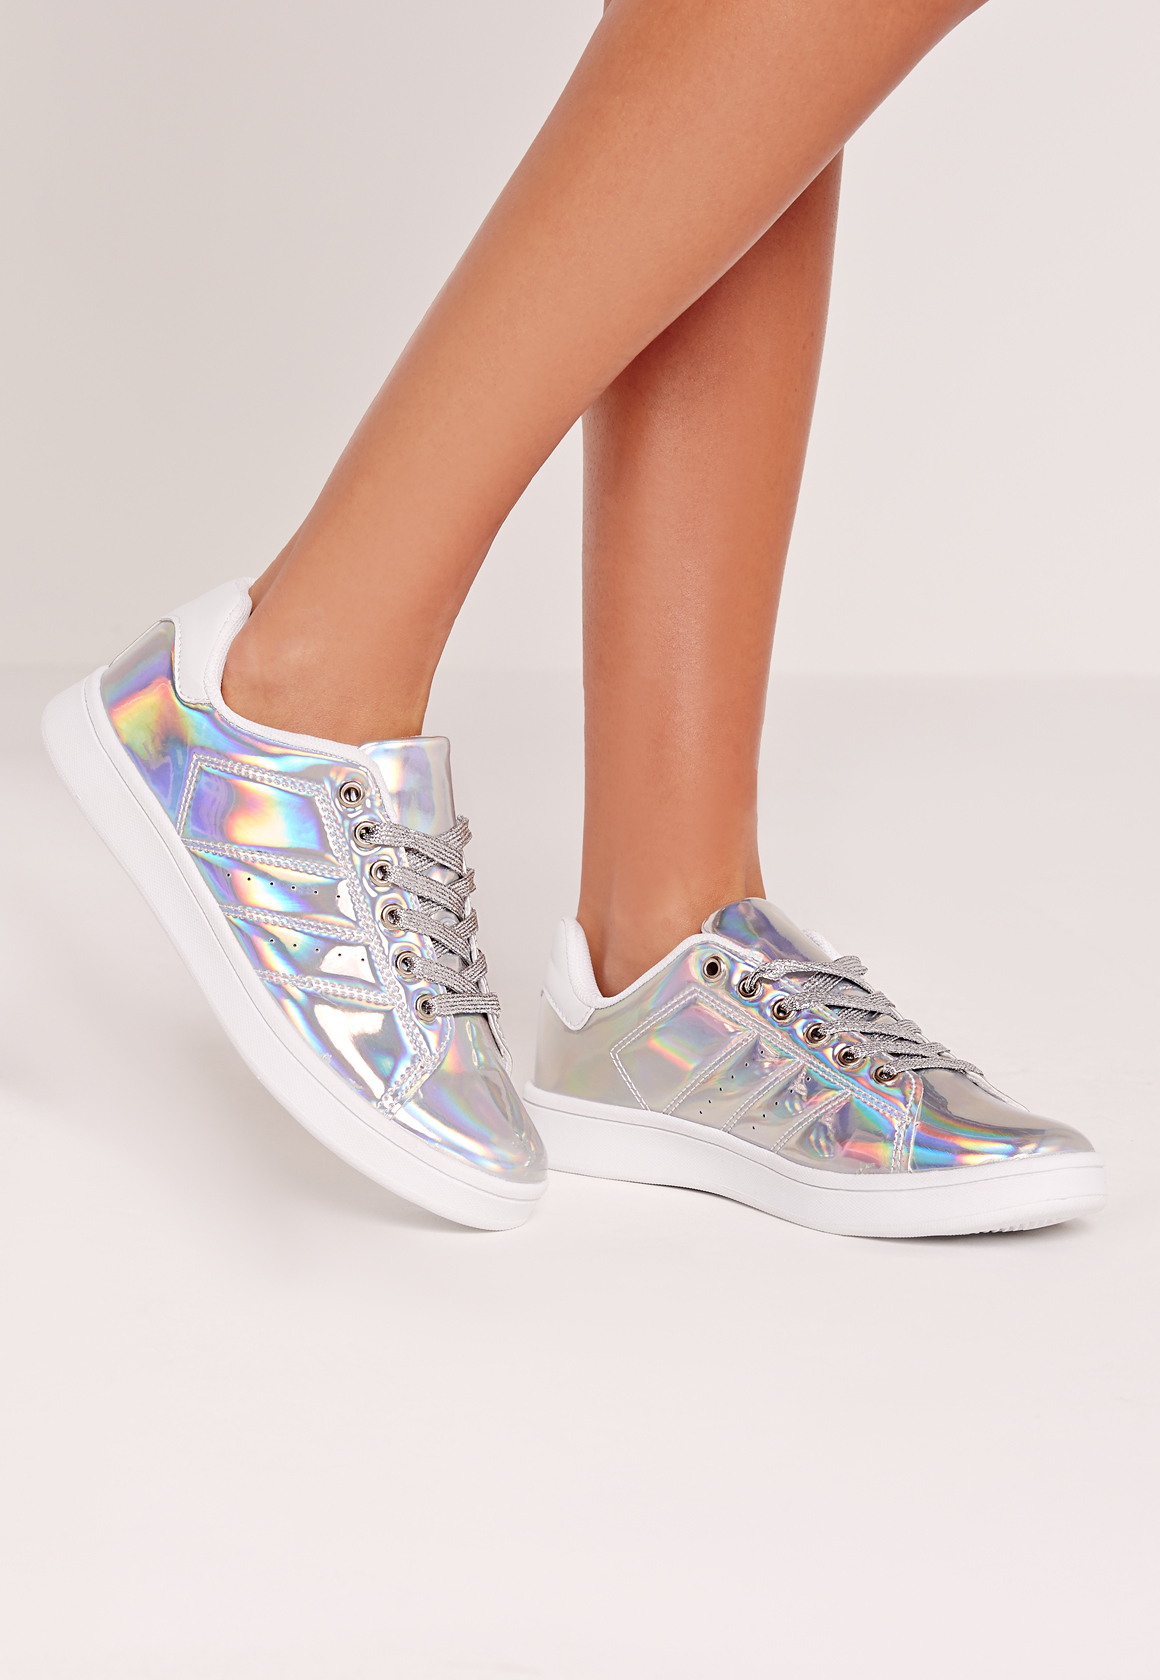 Holographic Tennis Shoes